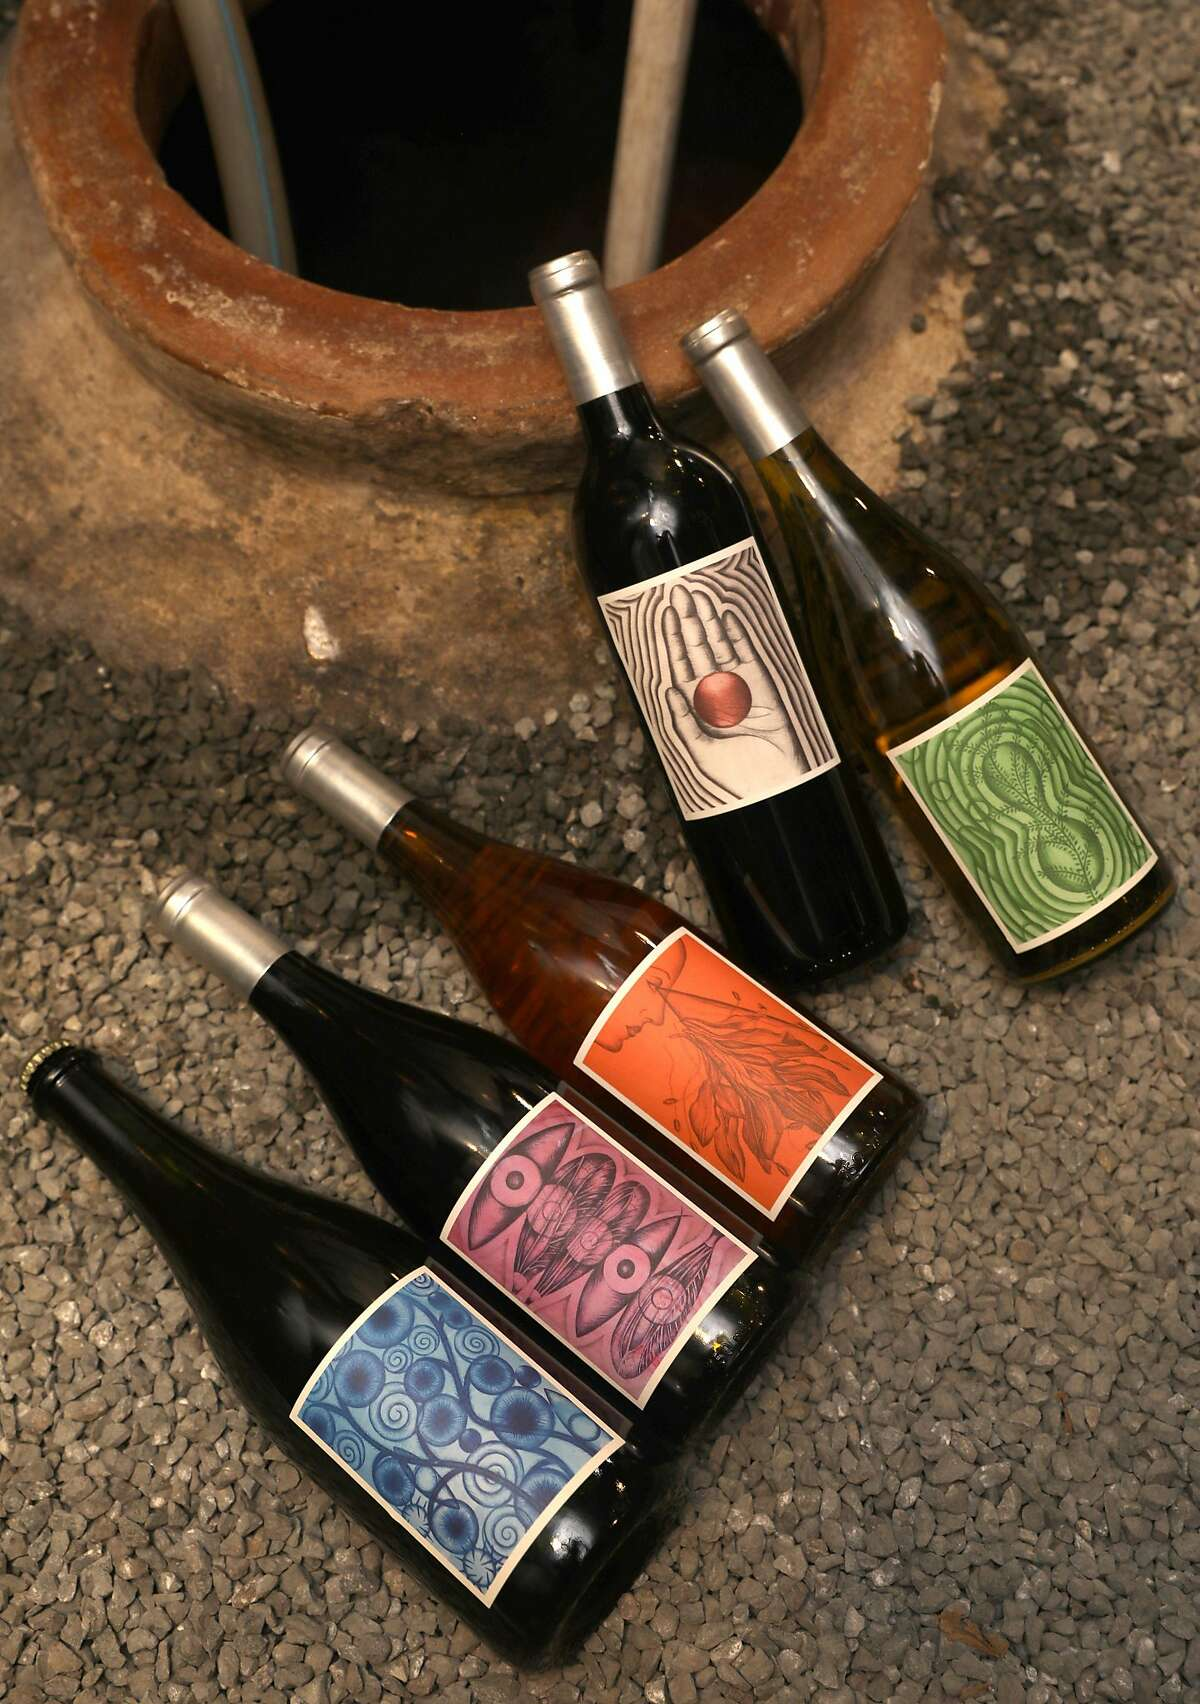 Winemaker Caleb Leisure made five different wines from 2018 which he shows here at Coturri Wine on Tuesday, Aug. 13, 2019, in Glen Ellen, Calif. Bottom to top�2018 Caesura, 2018 Ab Ovo, 2018 Mother Knows, 2018 Other Hand, and 2018 Verso.